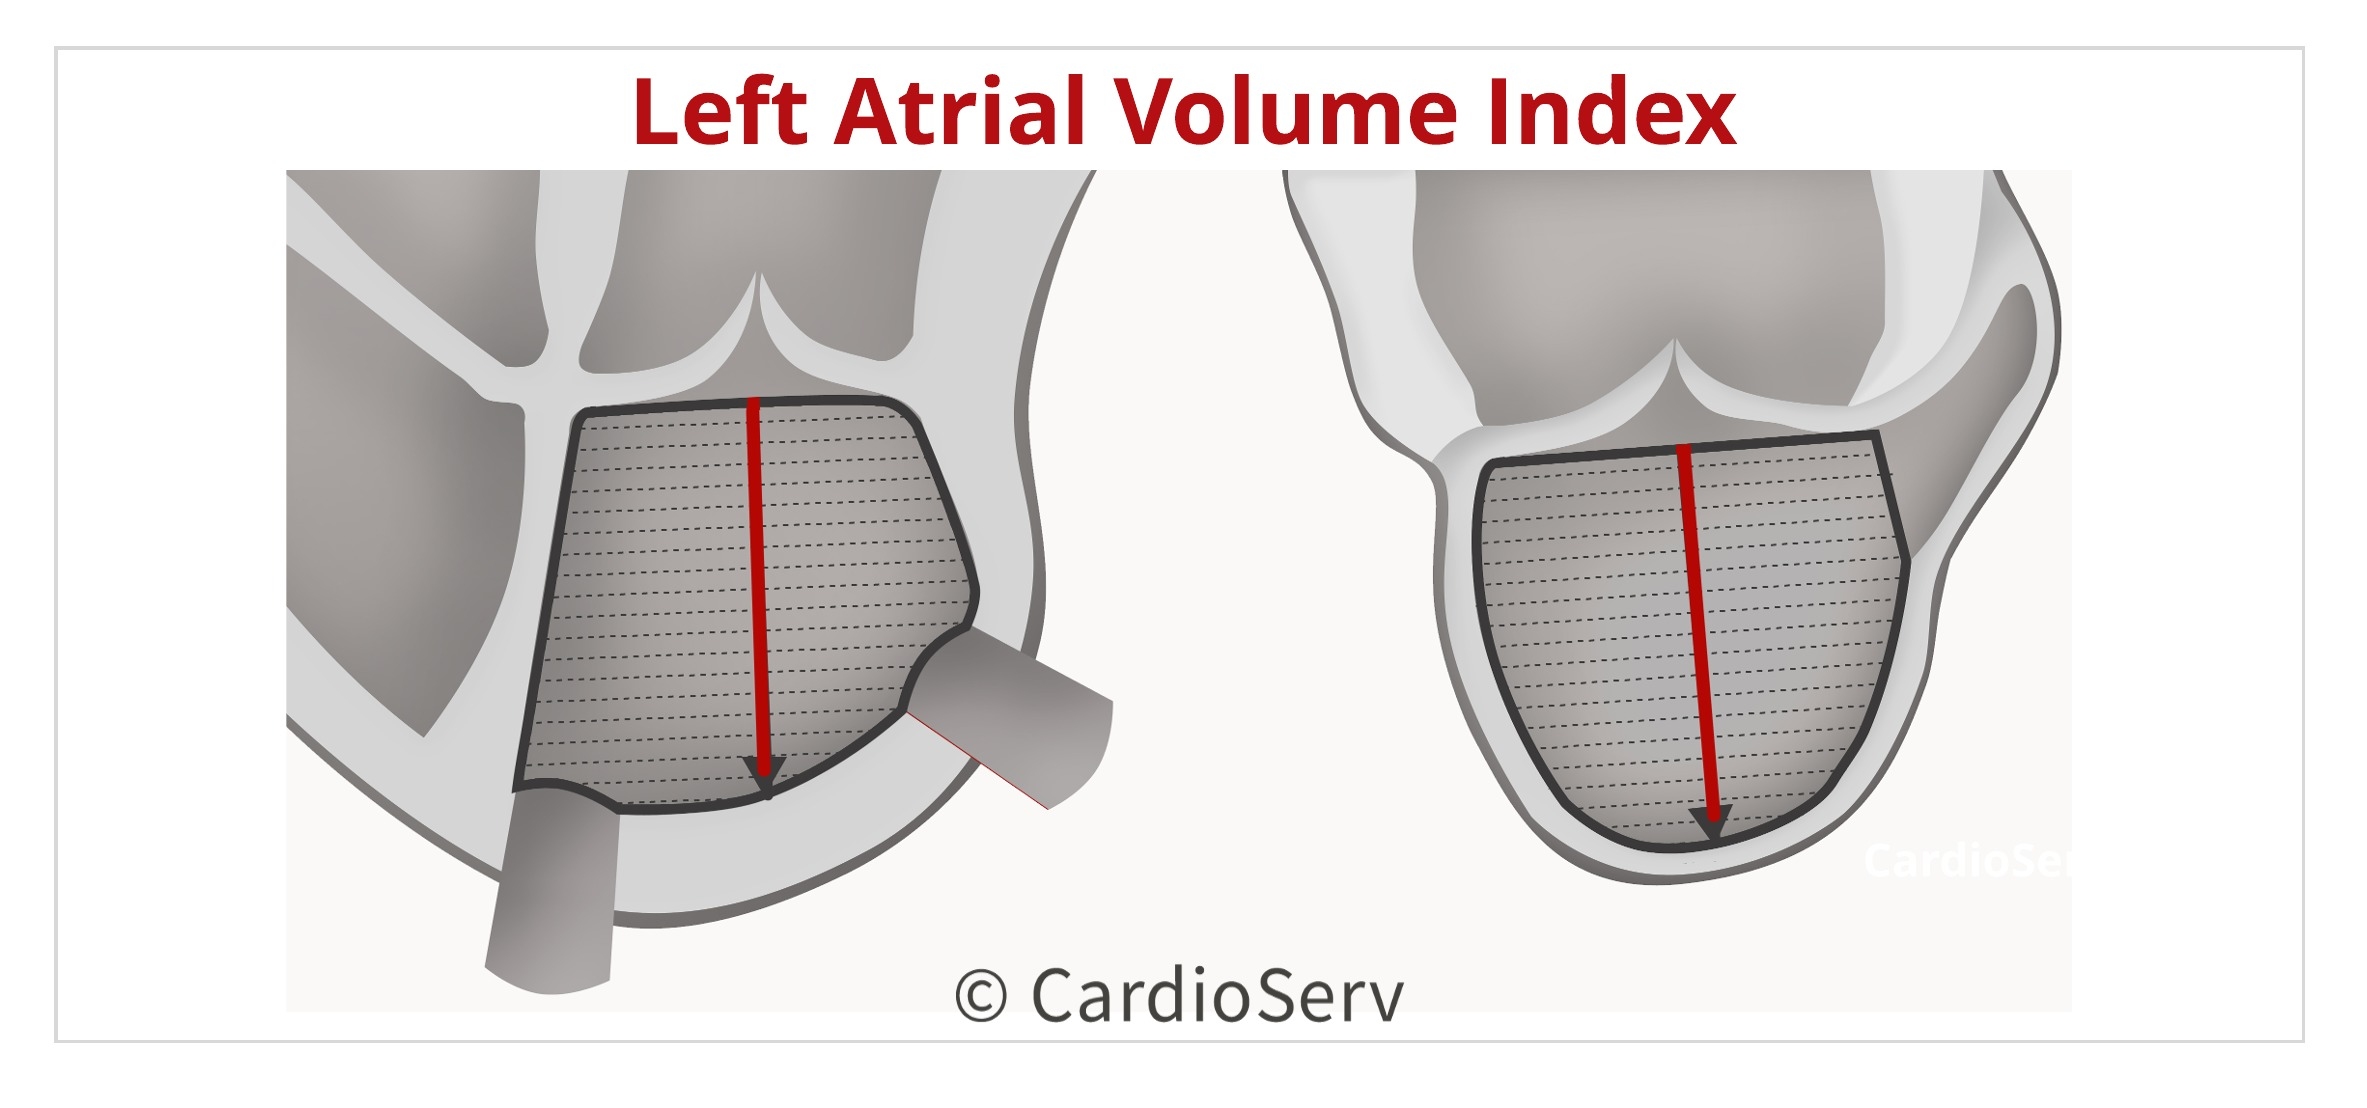 Left Atrial Volume Index